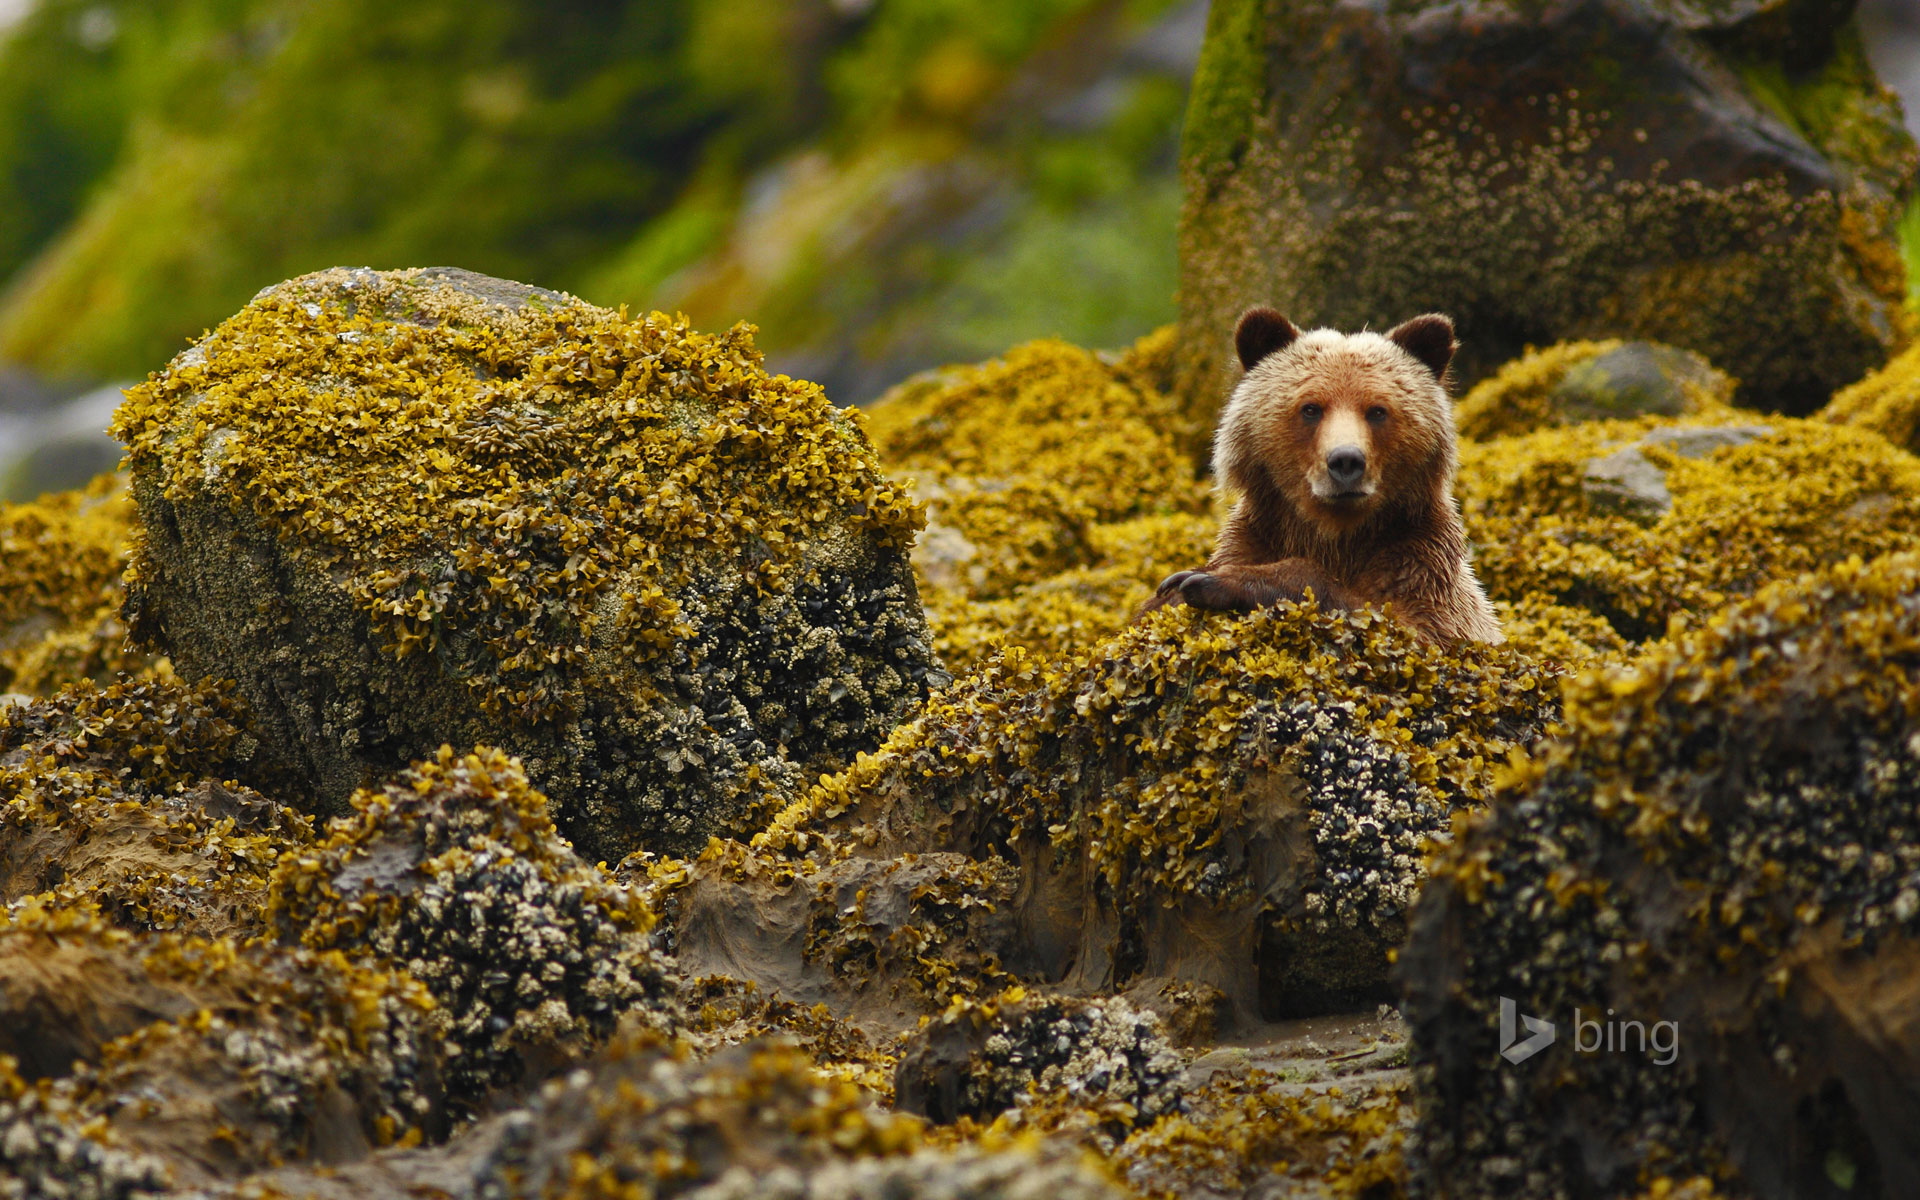 A grizzly in the Great Bear Rainforest, British Columbia, Canada